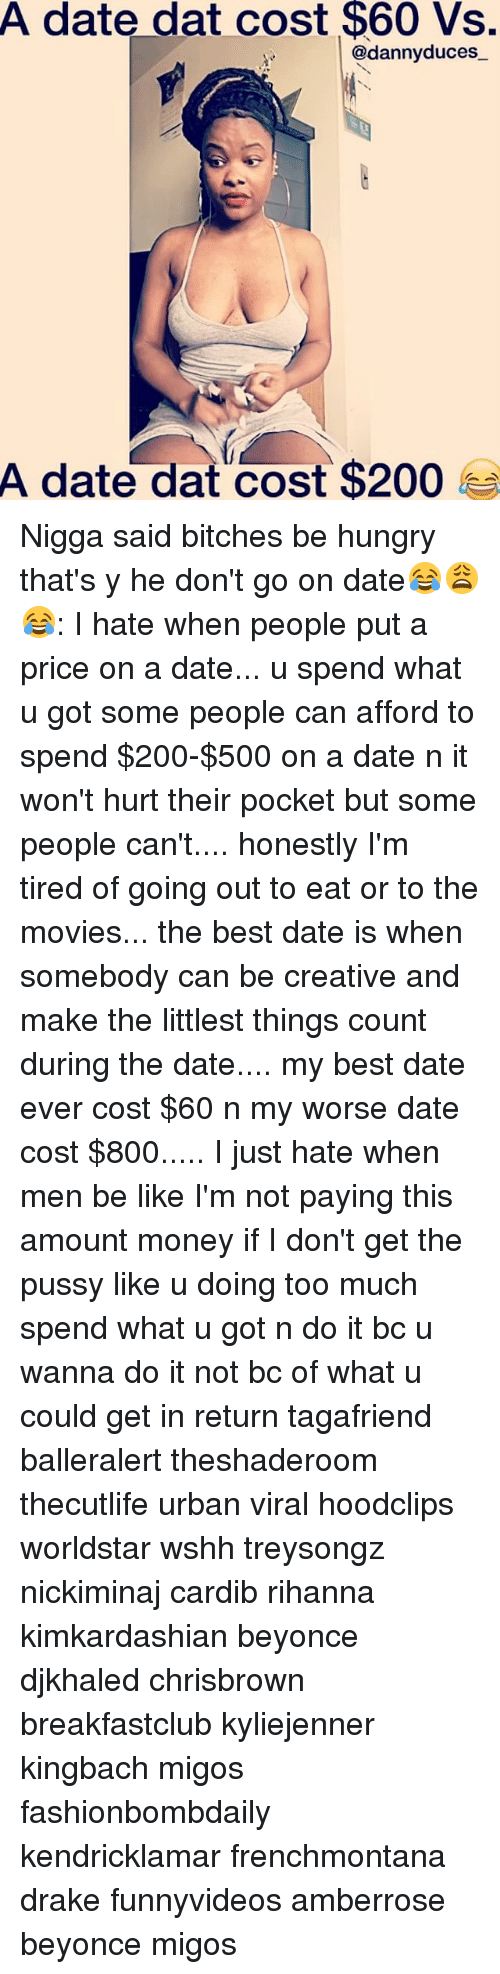 Hungryness: A date dat cost $60 Vs.  @danny duces  A date dat cost $200 Nigga said bitches be hungry that's y he don't go on date😂😩😂: I hate when people put a price on a date... u spend what u got some people can afford to spend $200-$500 on a date n it won't hurt their pocket but some people can't.... honestly I'm tired of going out to eat or to the movies... the best date is when somebody can be creative and make the littlest things count during the date.... my best date ever cost $60 n my worse date cost $800..... I just hate when men be like I'm not paying this amount money if I don't get the pussy like u doing too much spend what u got n do it bc u wanna do it not bc of what u could get in return tagafriend balleralert theshaderoom thecutlife urban viral hoodclips worldstar wshh treysongz nickiminaj cardib rihanna kimkardashian beyonce djkhaled chrisbrown breakfastclub kyliejenner kingbach migos fashionbombdaily kendricklamar frenchmontana drake funnyvideos amberrose beyonce migos